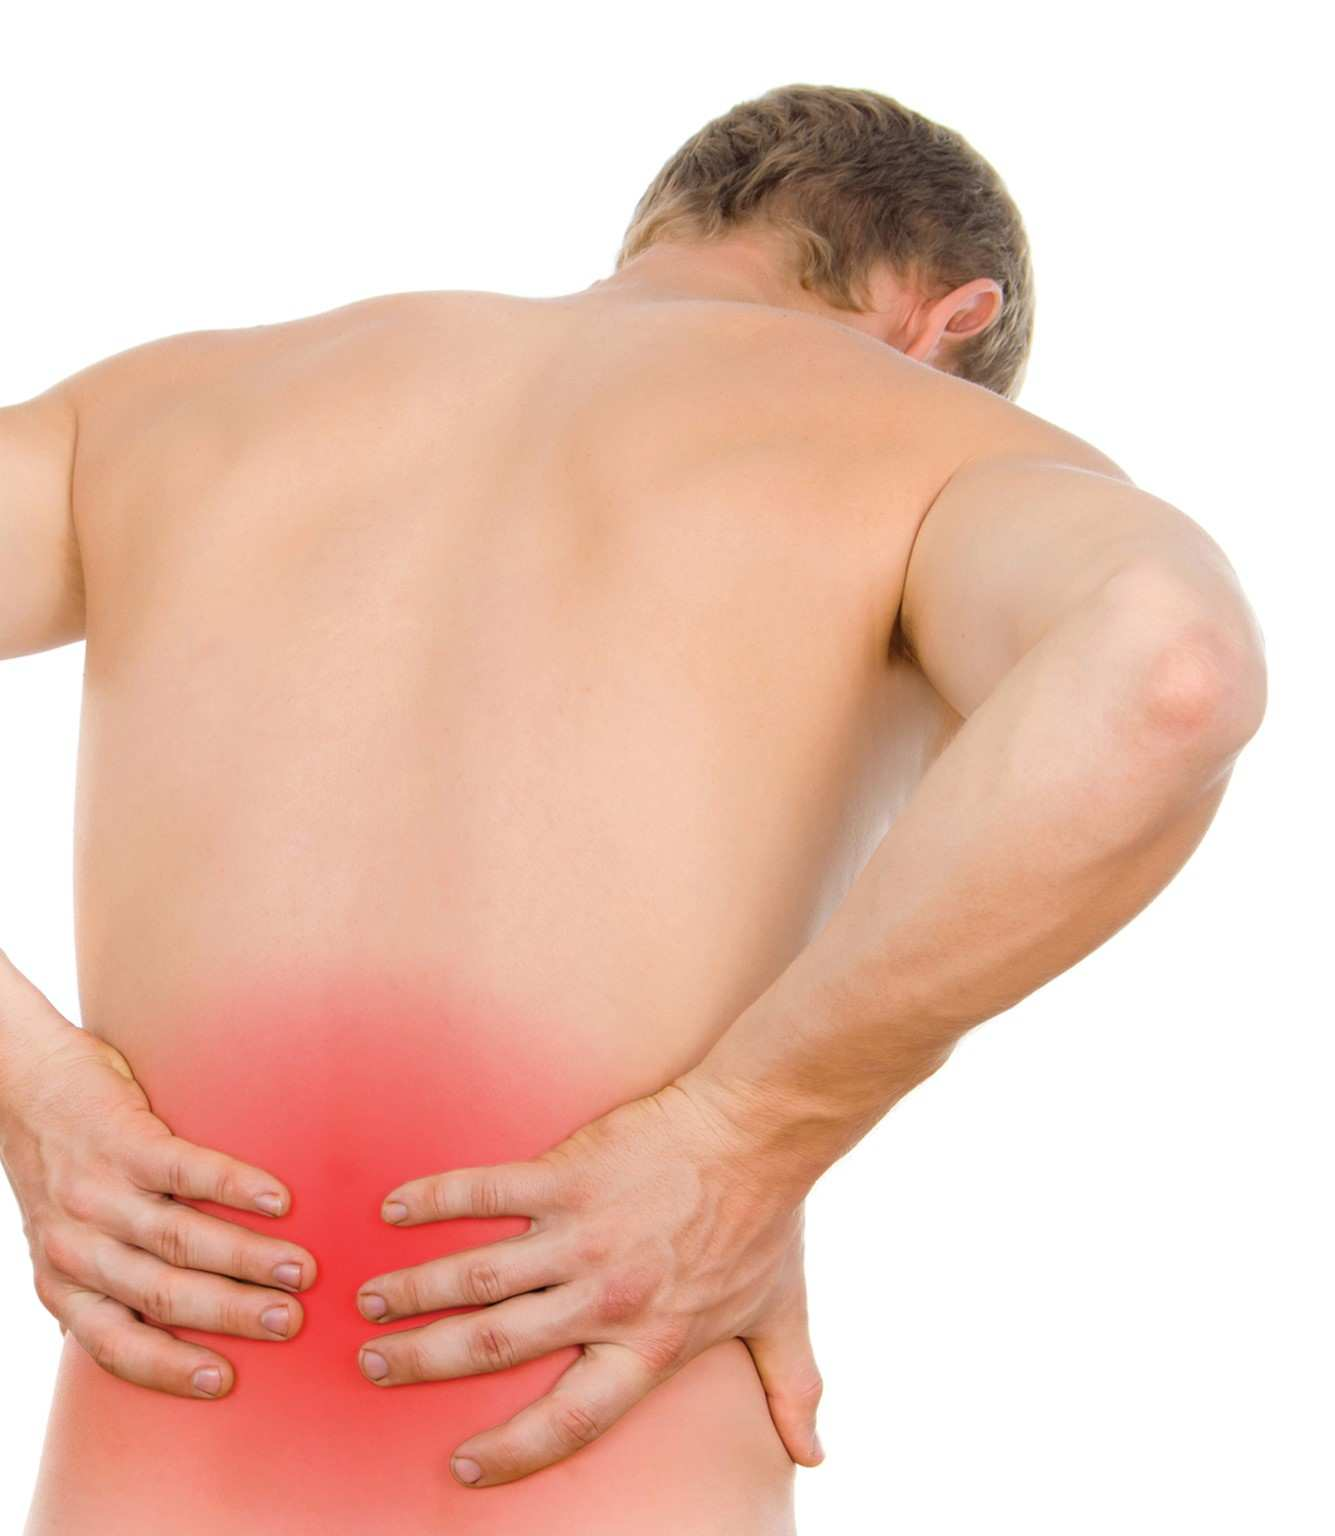 Help reduce lower back pain and inflammation